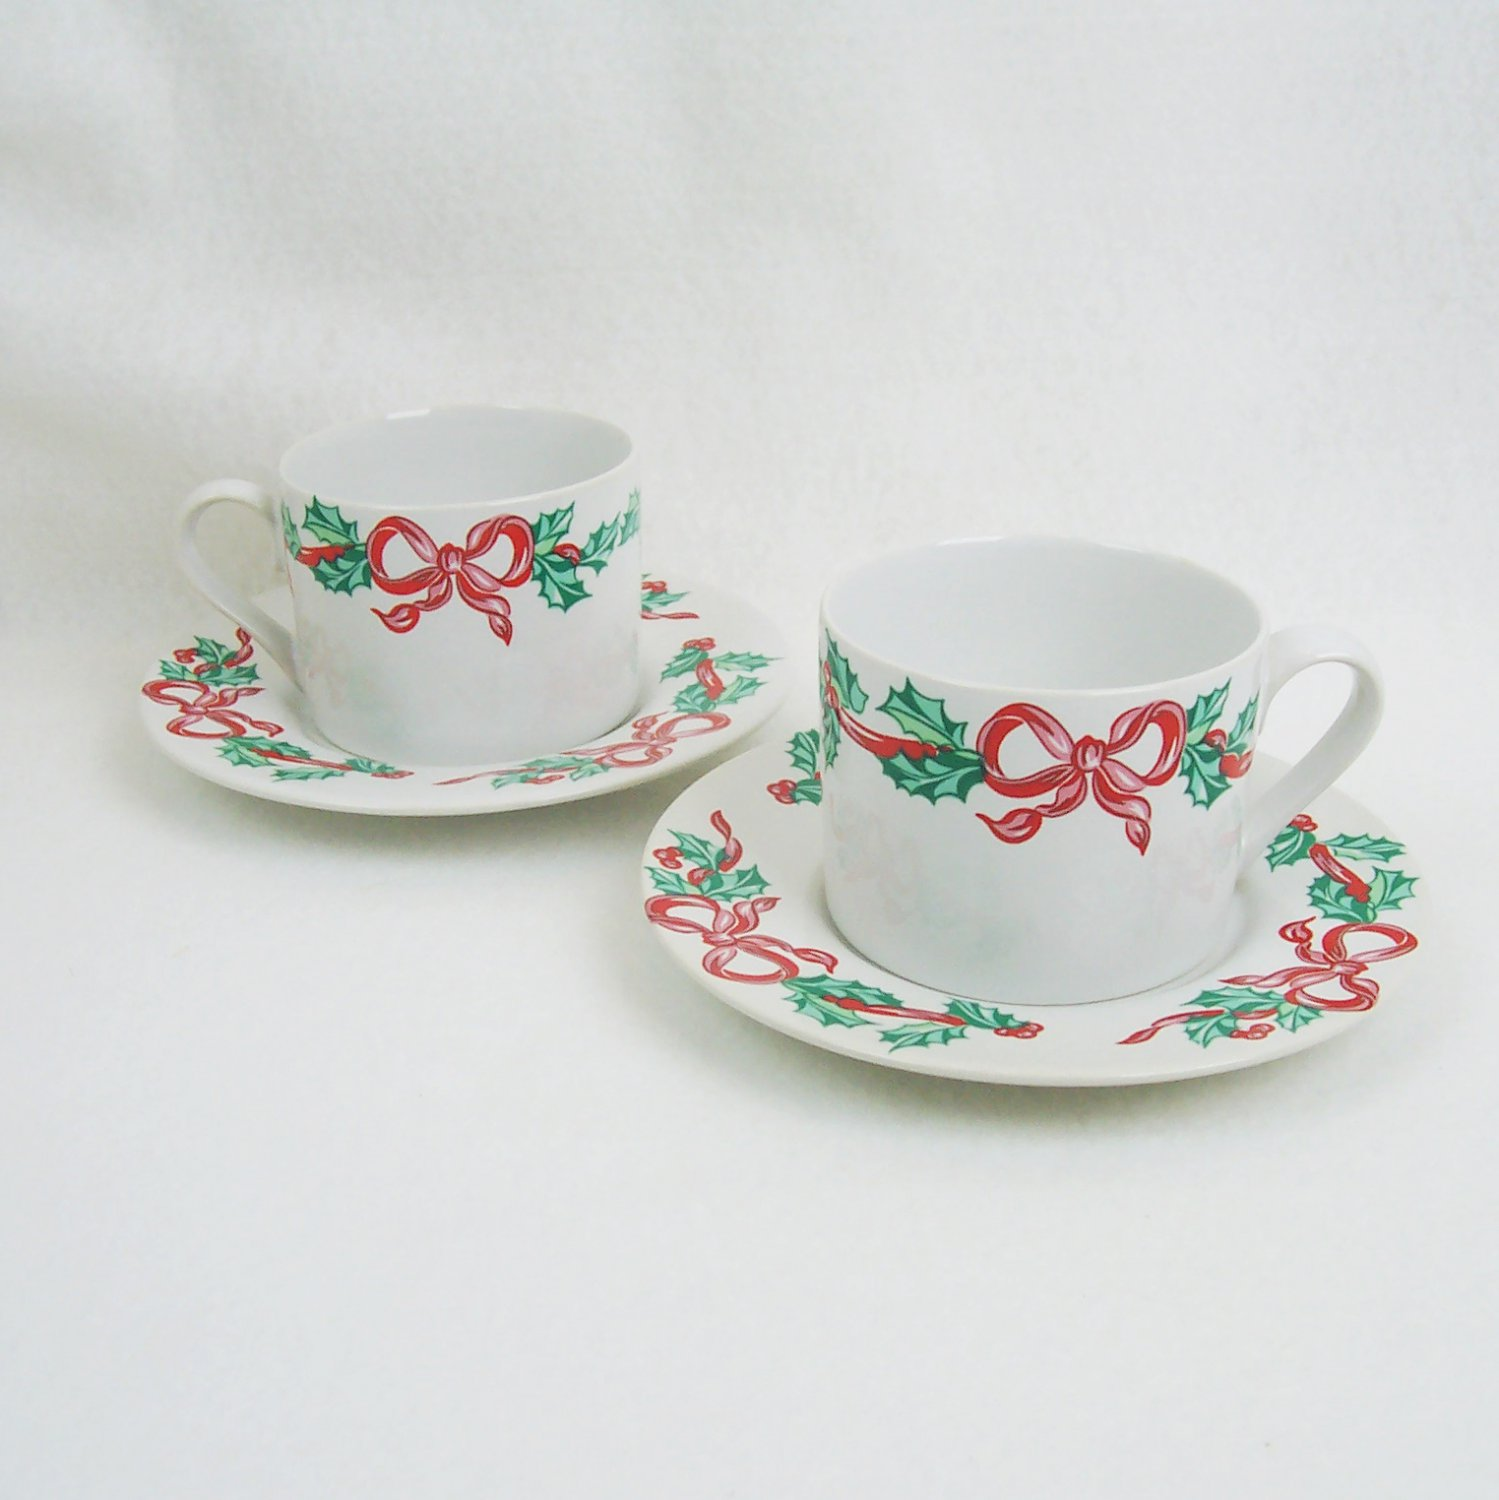 International Tableworks Christmas Ribbons Pair of Cups and Saucers Pattern 157